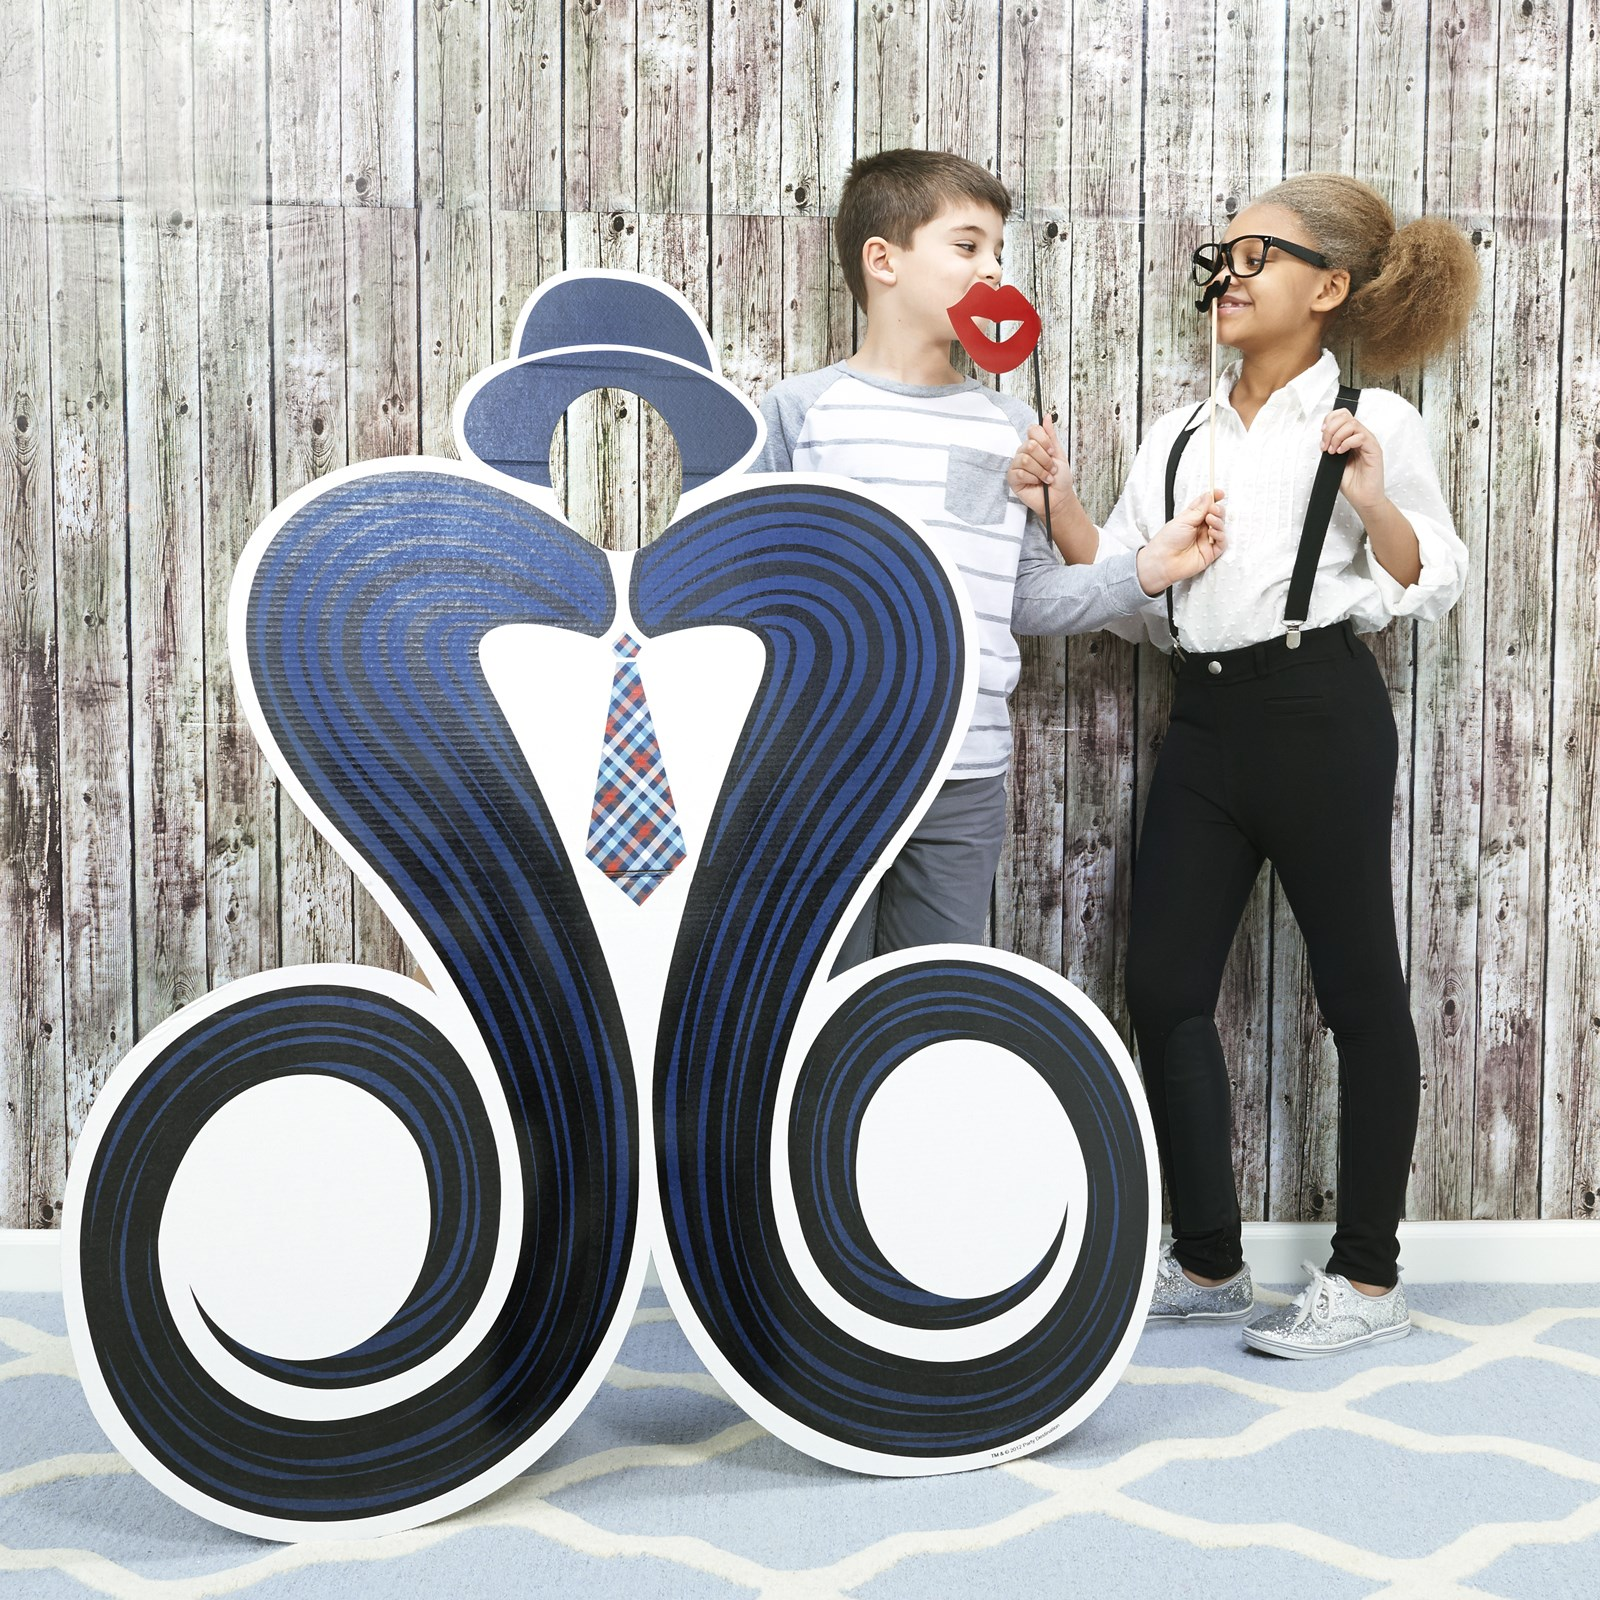 Mustache - Photo Booth Kit - Photo Booth Materials - 1 Guests